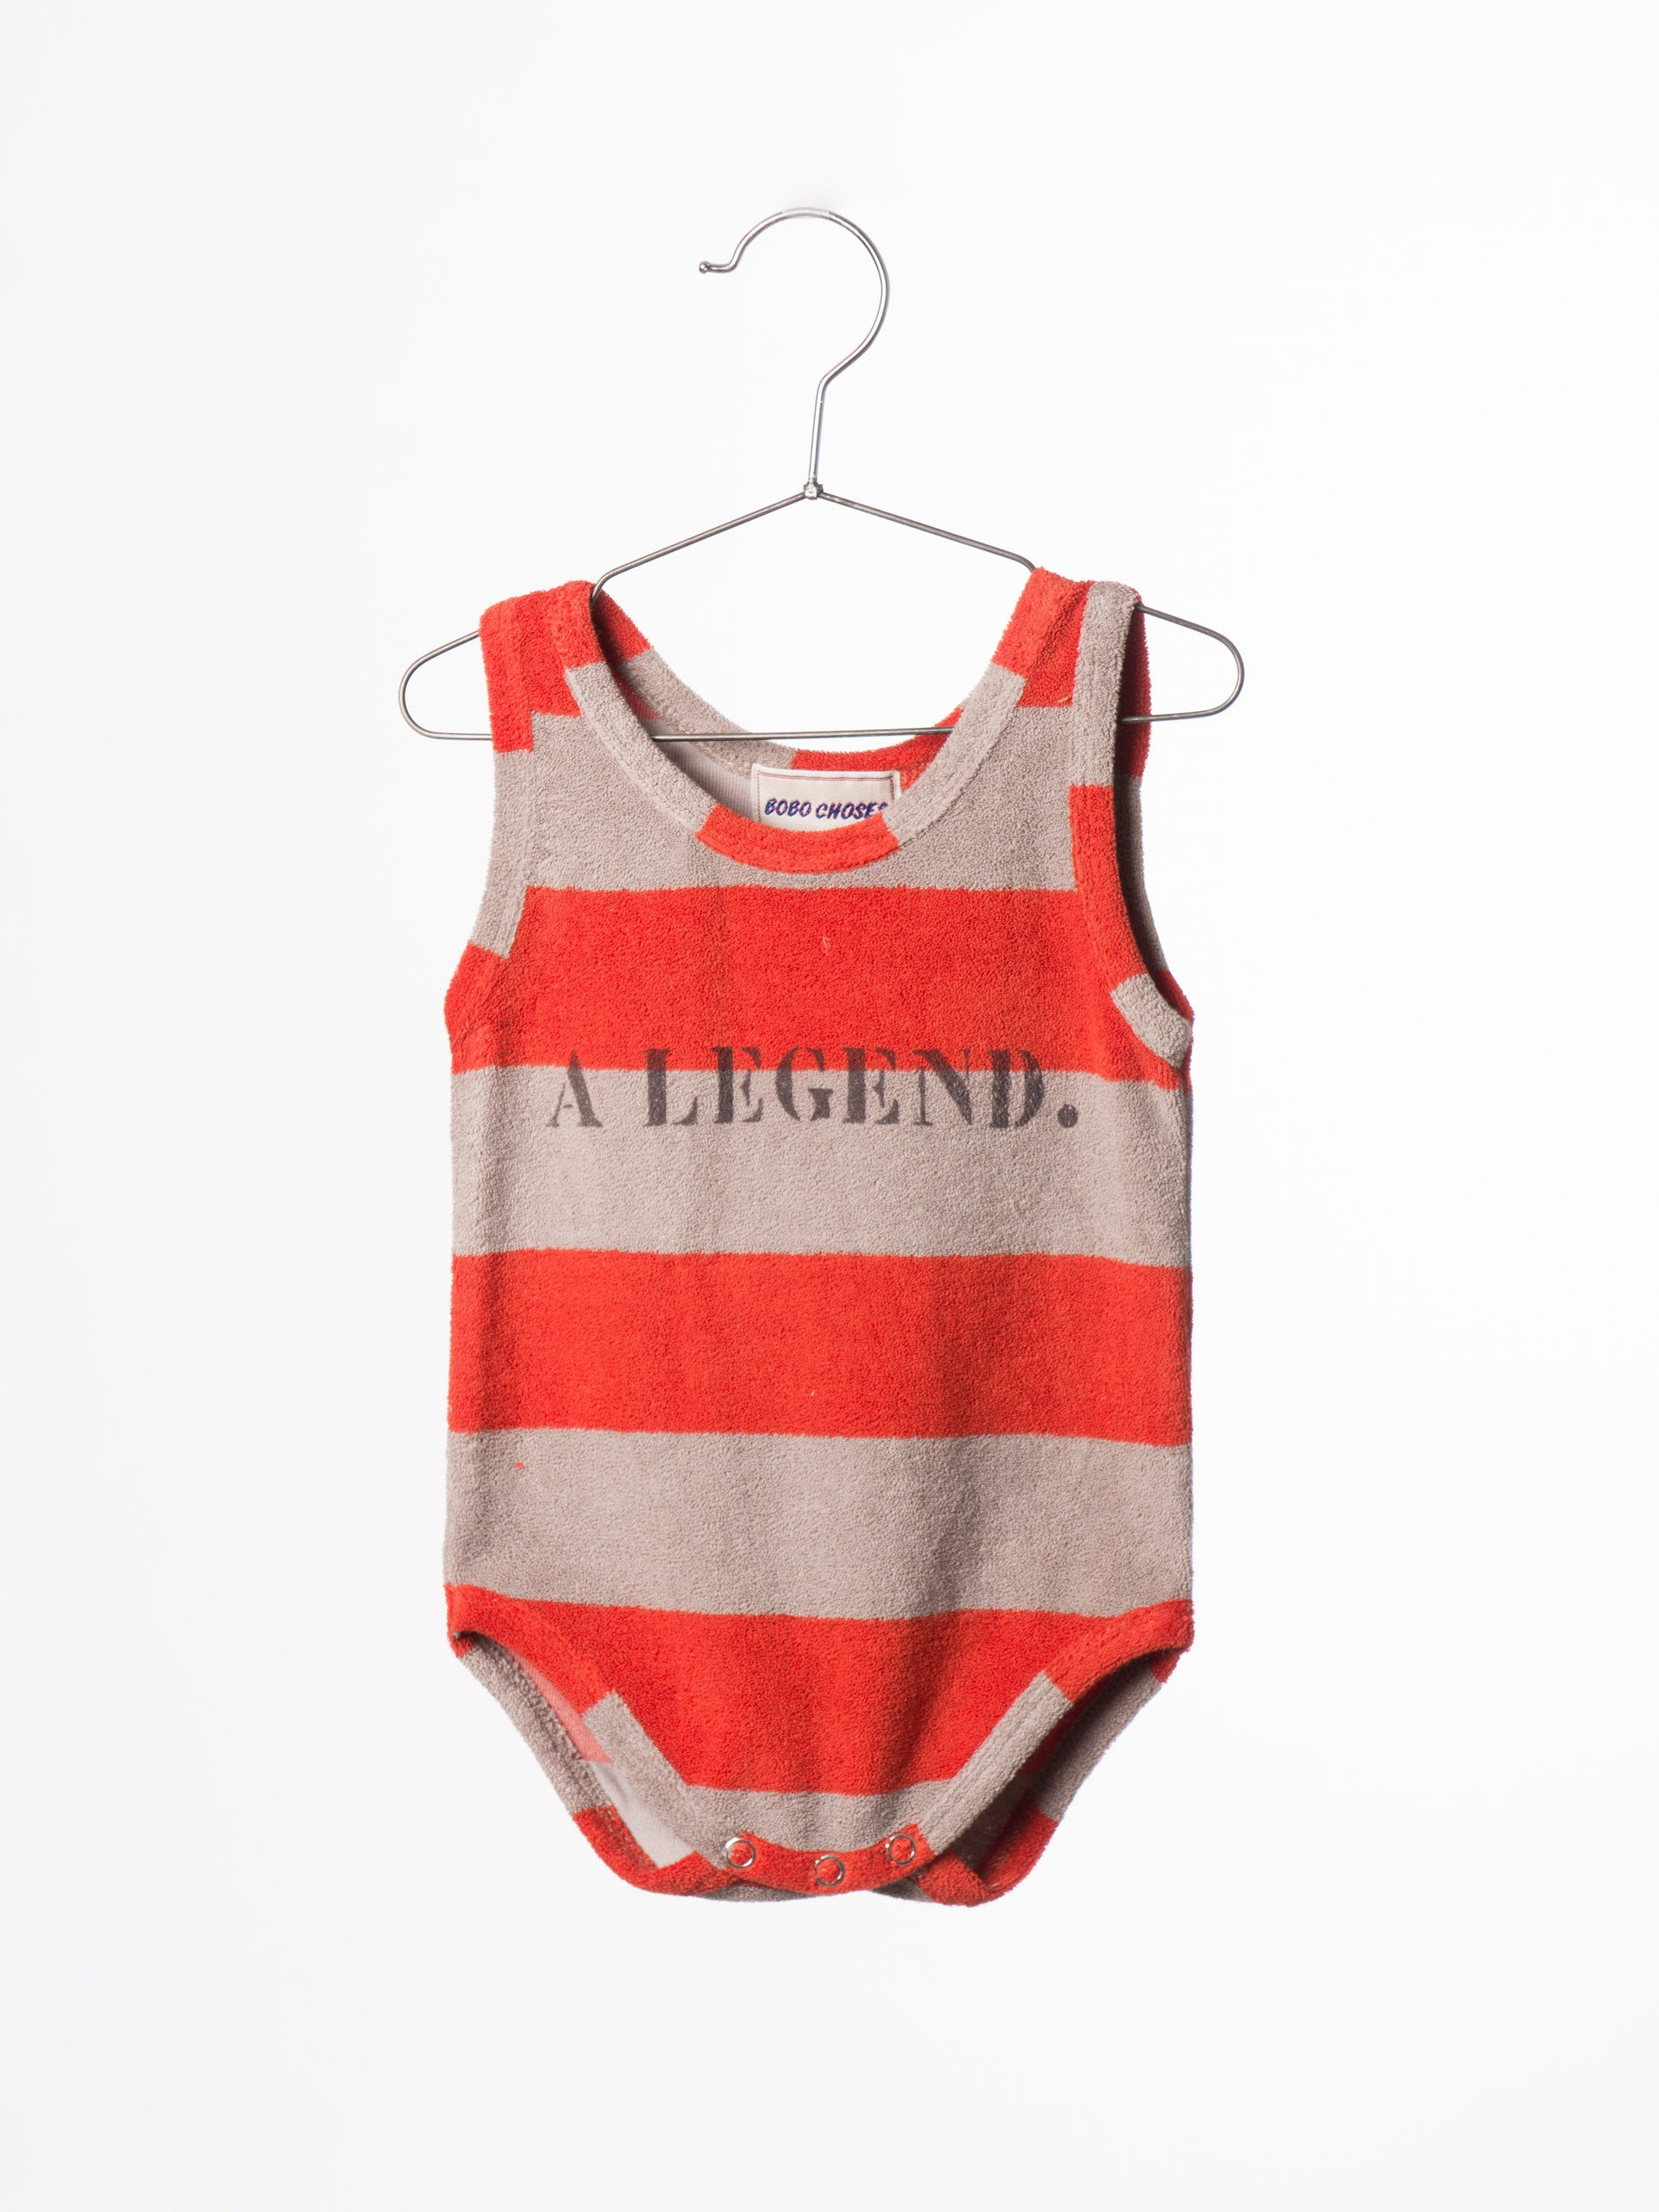 Bobo Choses A Legend Striped Terry Body - Ladida